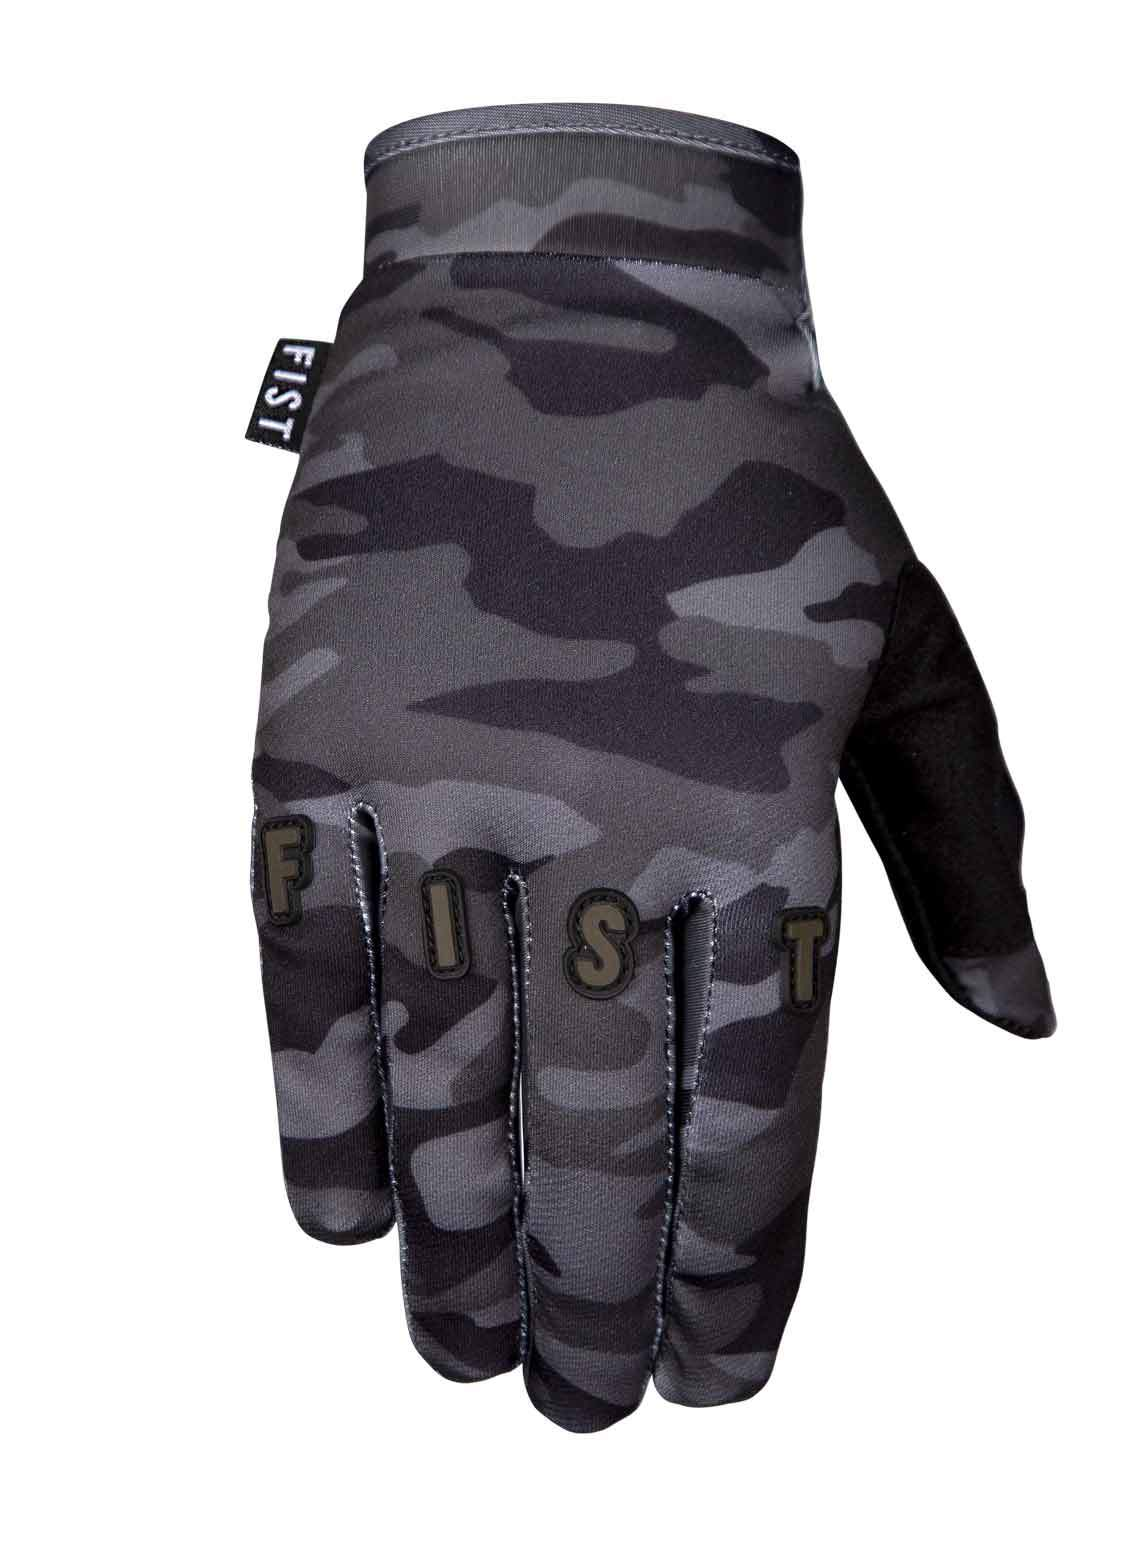 Fist Covert Camo Gloves - Size 10 / Adult L